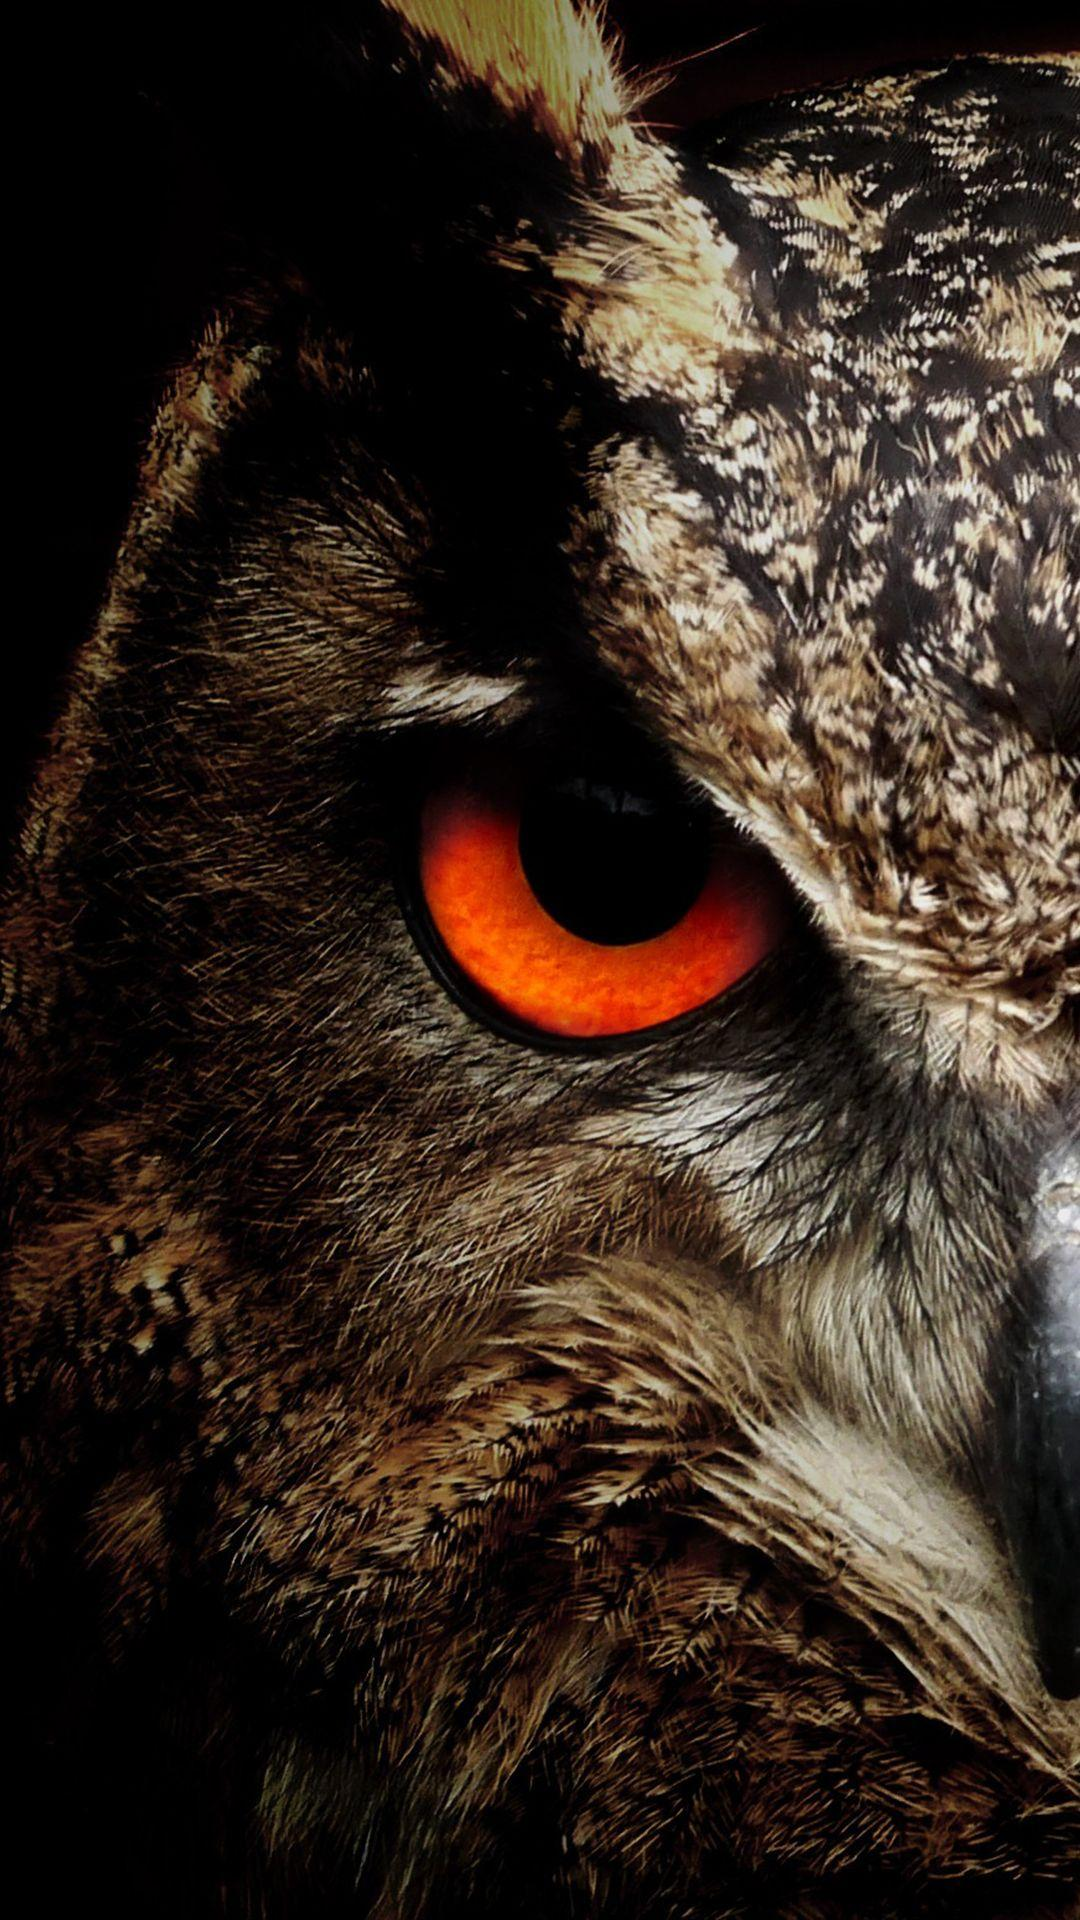 Flying Owl Hd Android Wallpapers - Wallpaper Cave